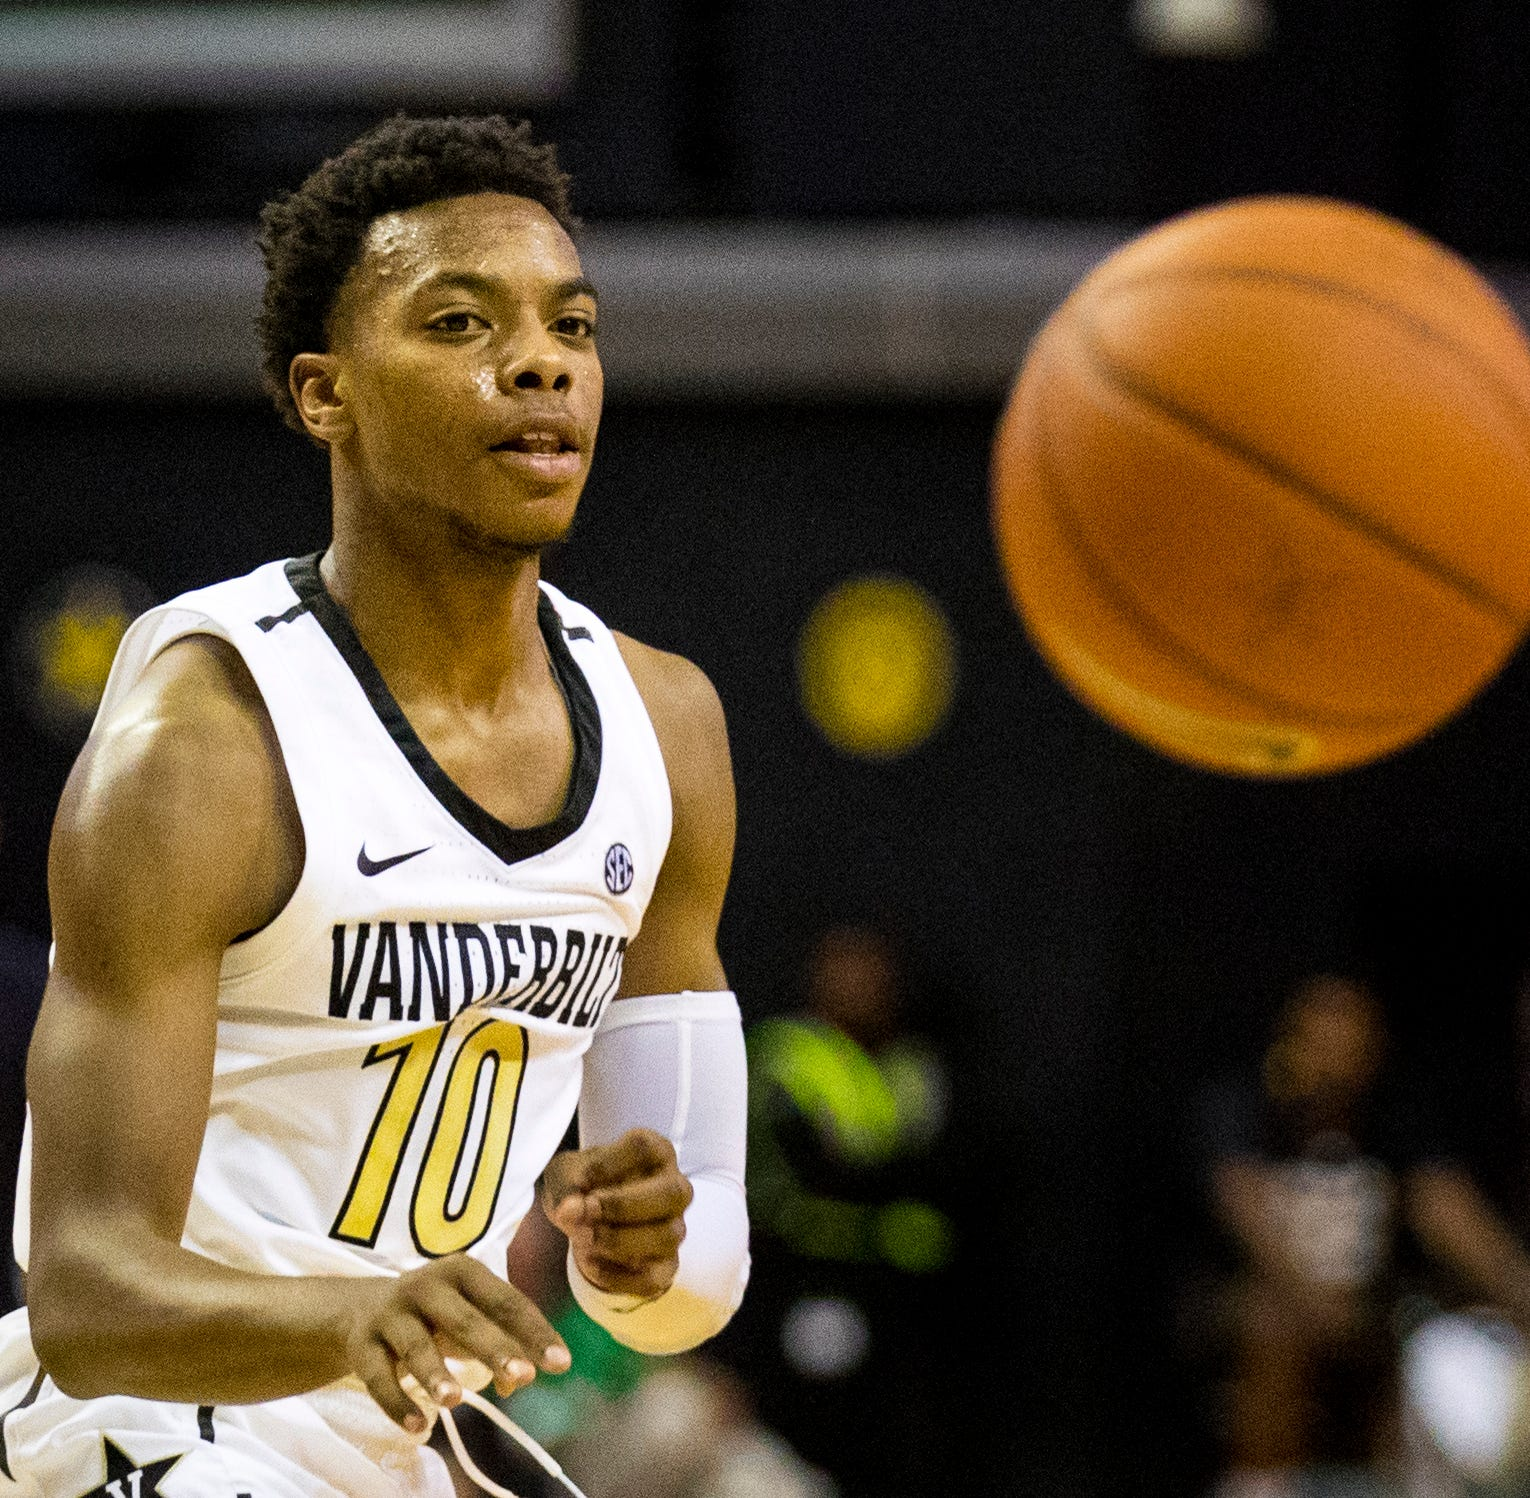 NBA Draft 2019: Could Darius Garland be a hidden gem?